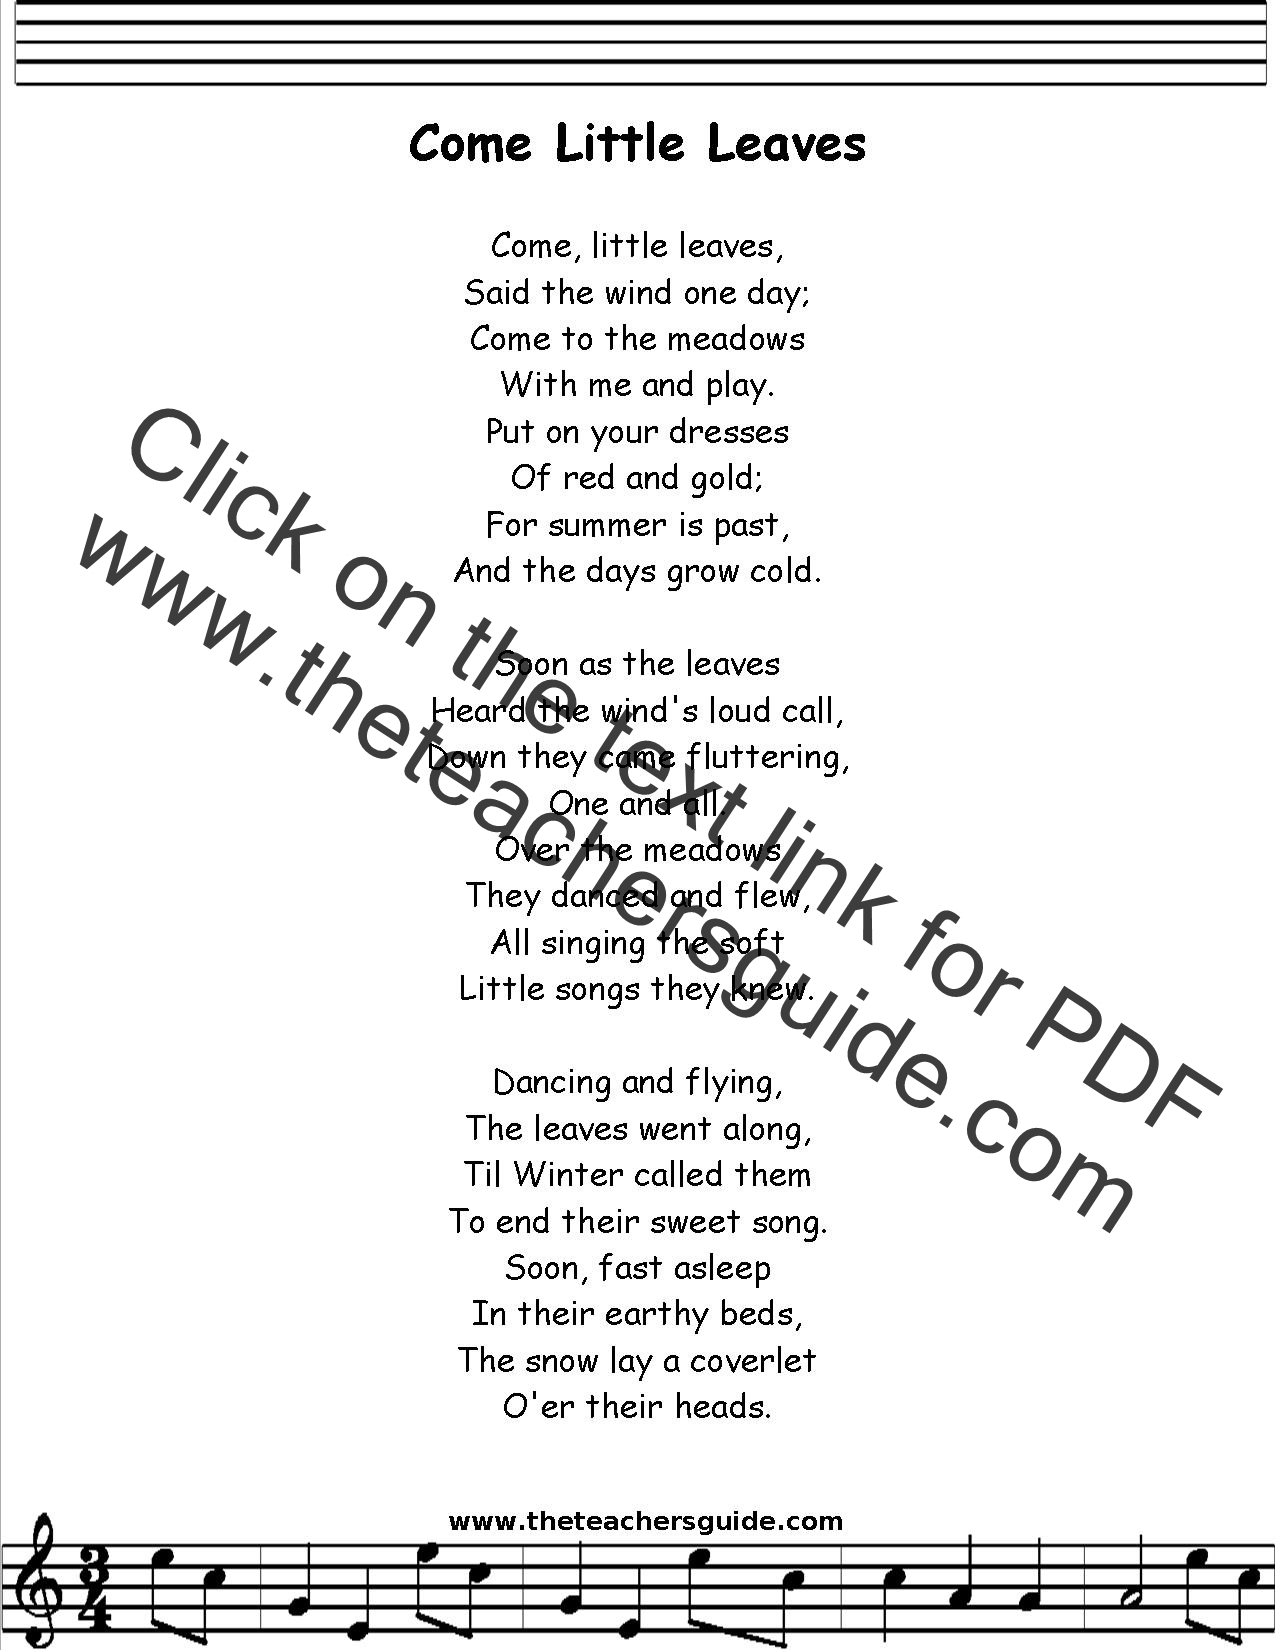 Come Little Leaves Lyrics, Printout, MIDI, and Video